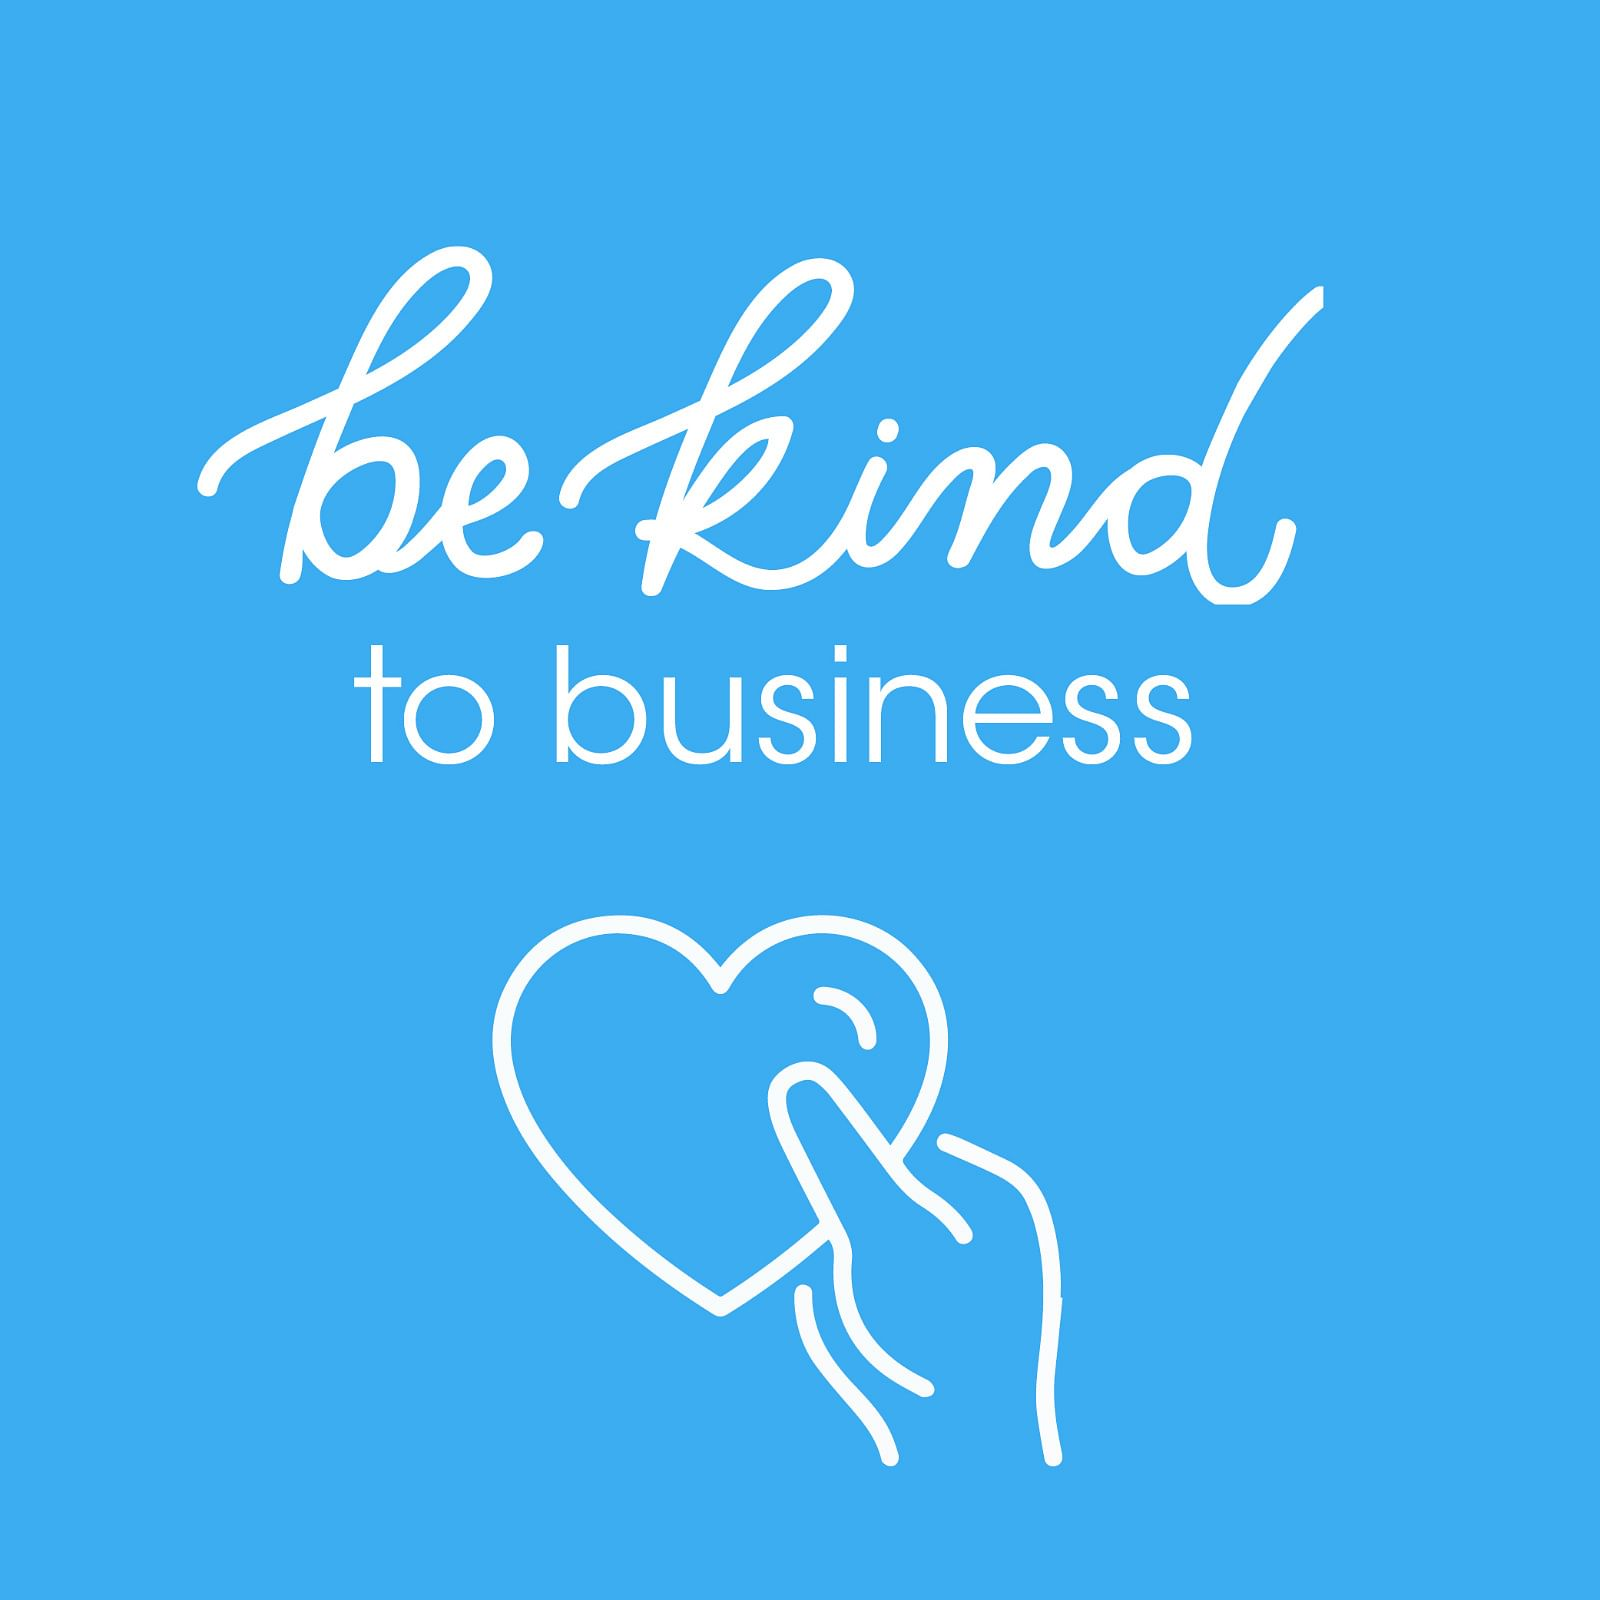 Text: be kind to business